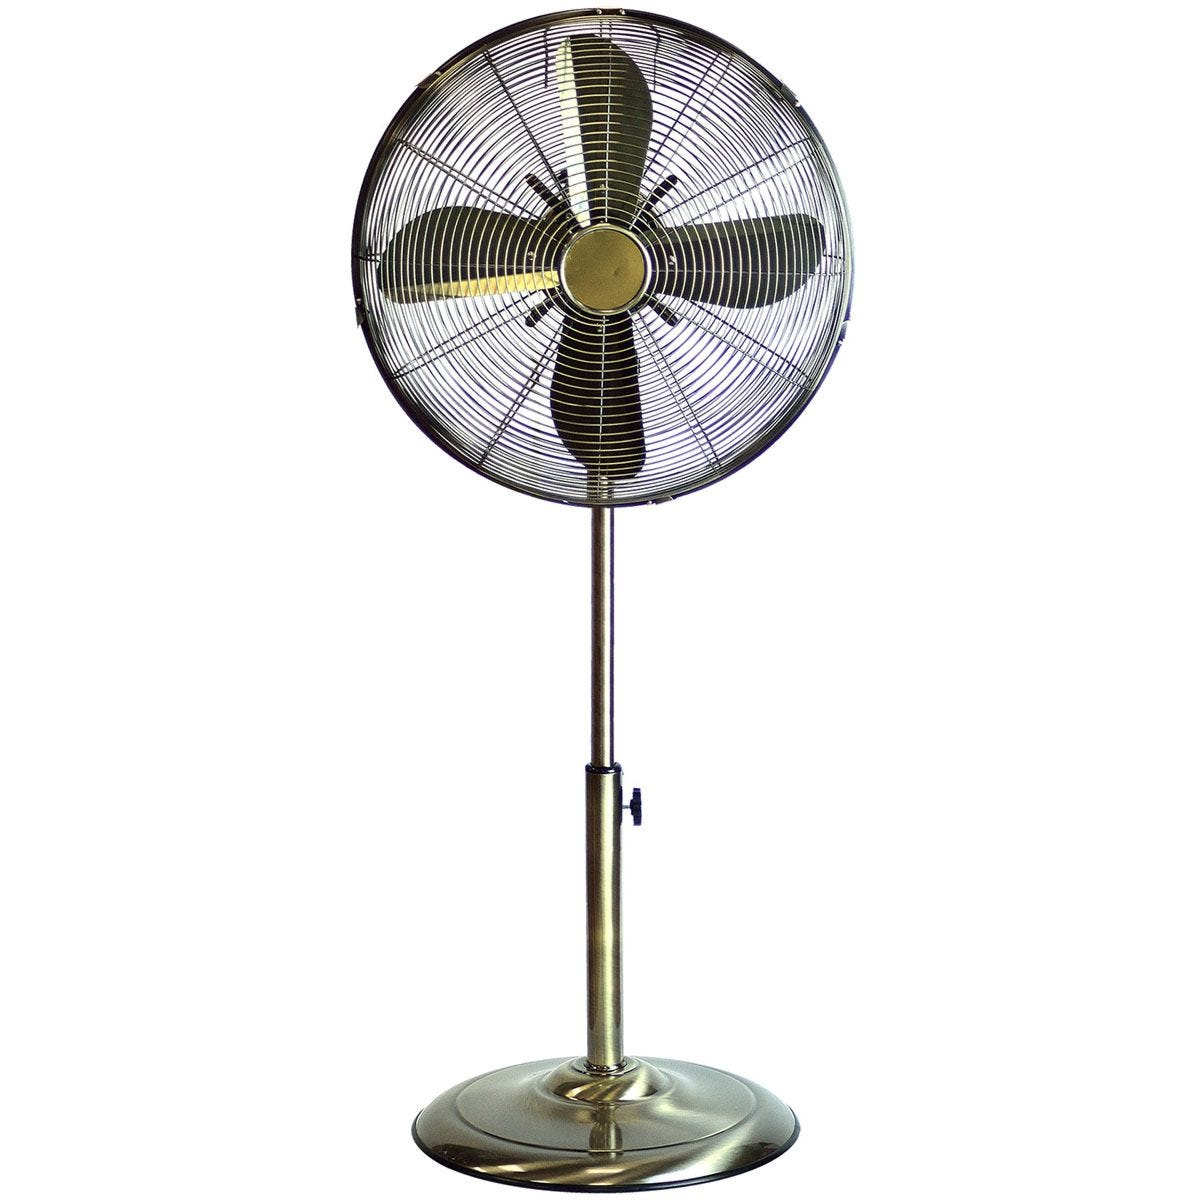 Status 16 Inch Oscillating Pedestal Floor Fan - Antique Brass